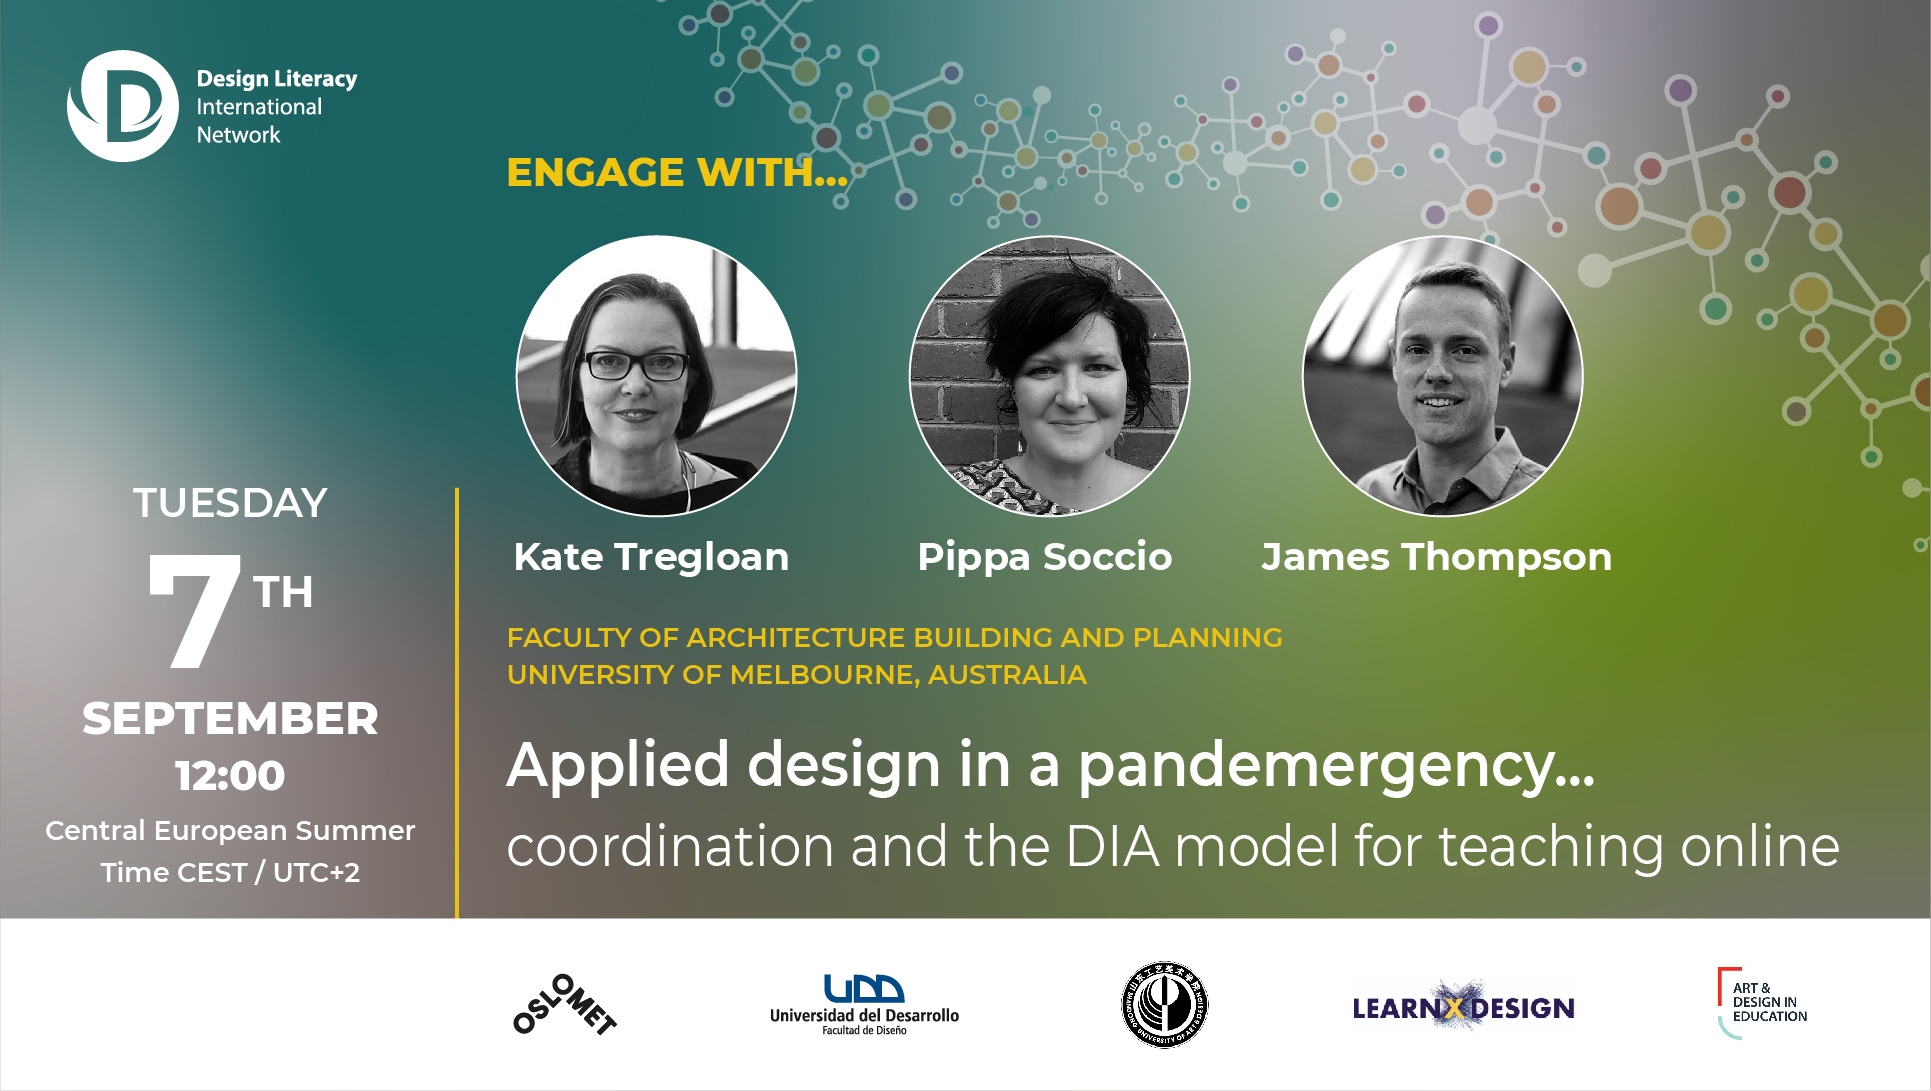 You are currently viewing Engage with Kate Tregloan, Pippa Soccio & James Thompson | Design Literacy International Network event